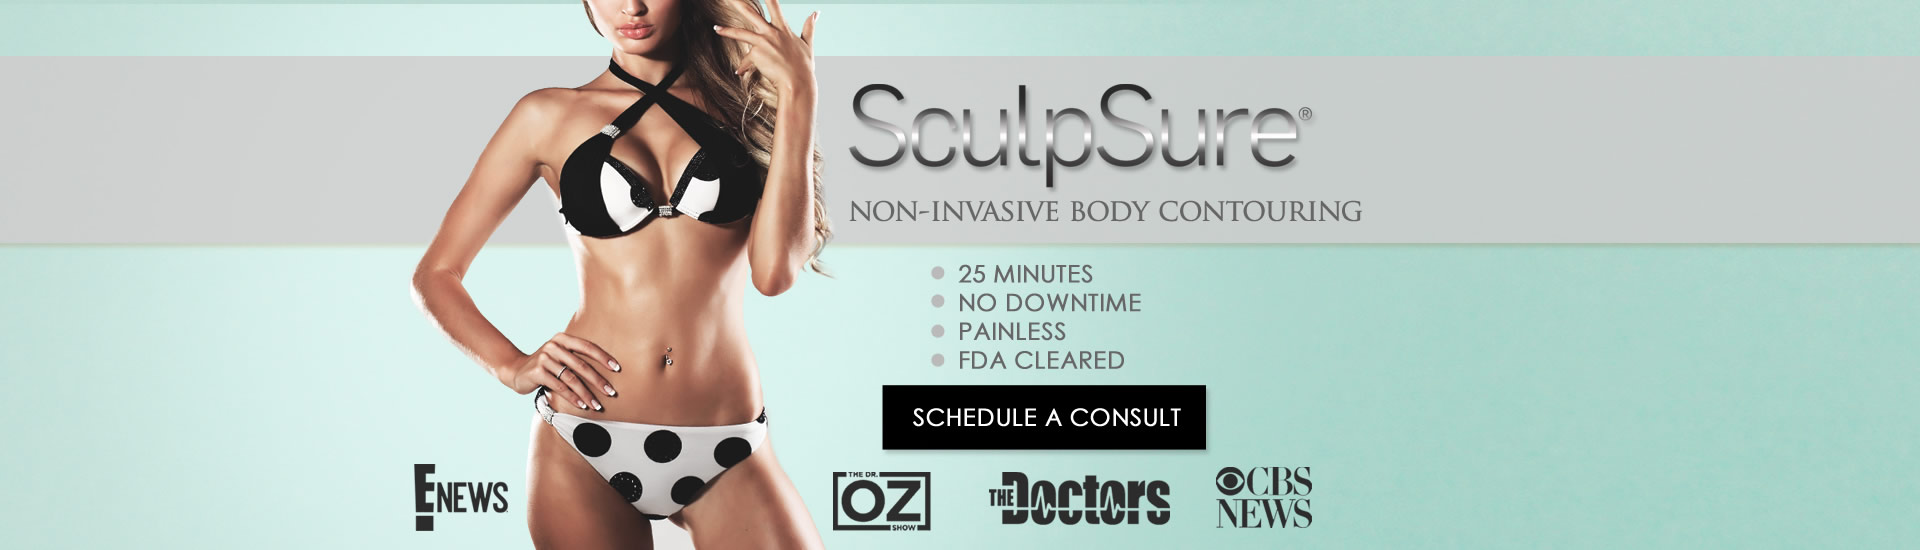 SculpSure, General Information